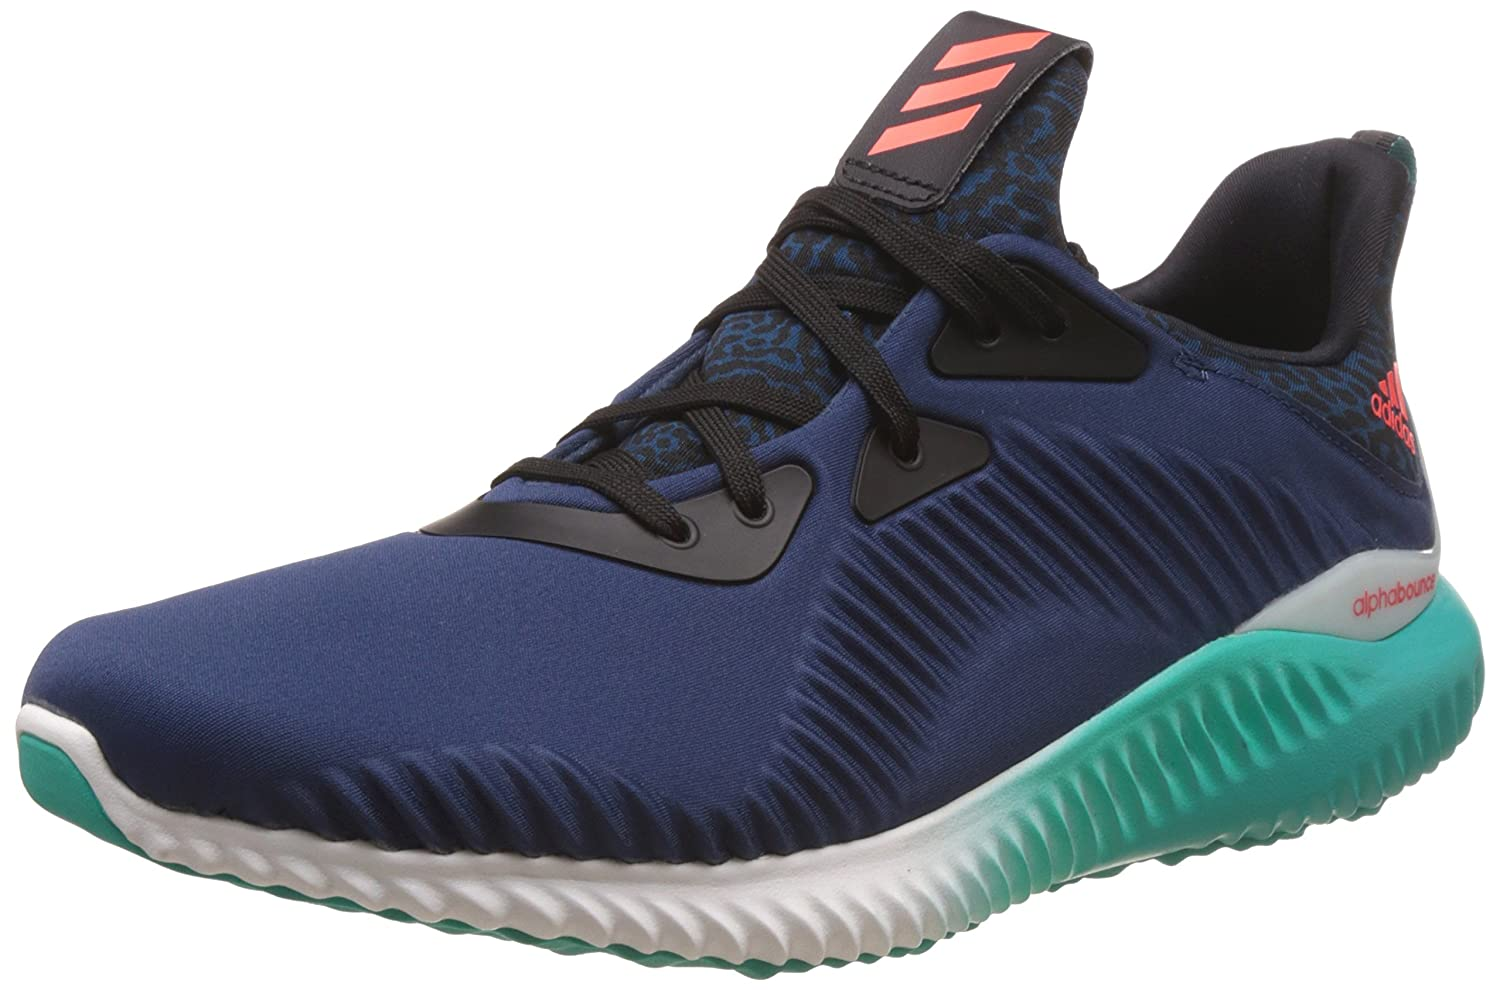 adidas Men\u0027s Alphabounce M Minblu, Solred and Shogrn Running Shoes - 10  UK/India (44.7 EU): Buy Online at Low Prices in India - Amazon.in